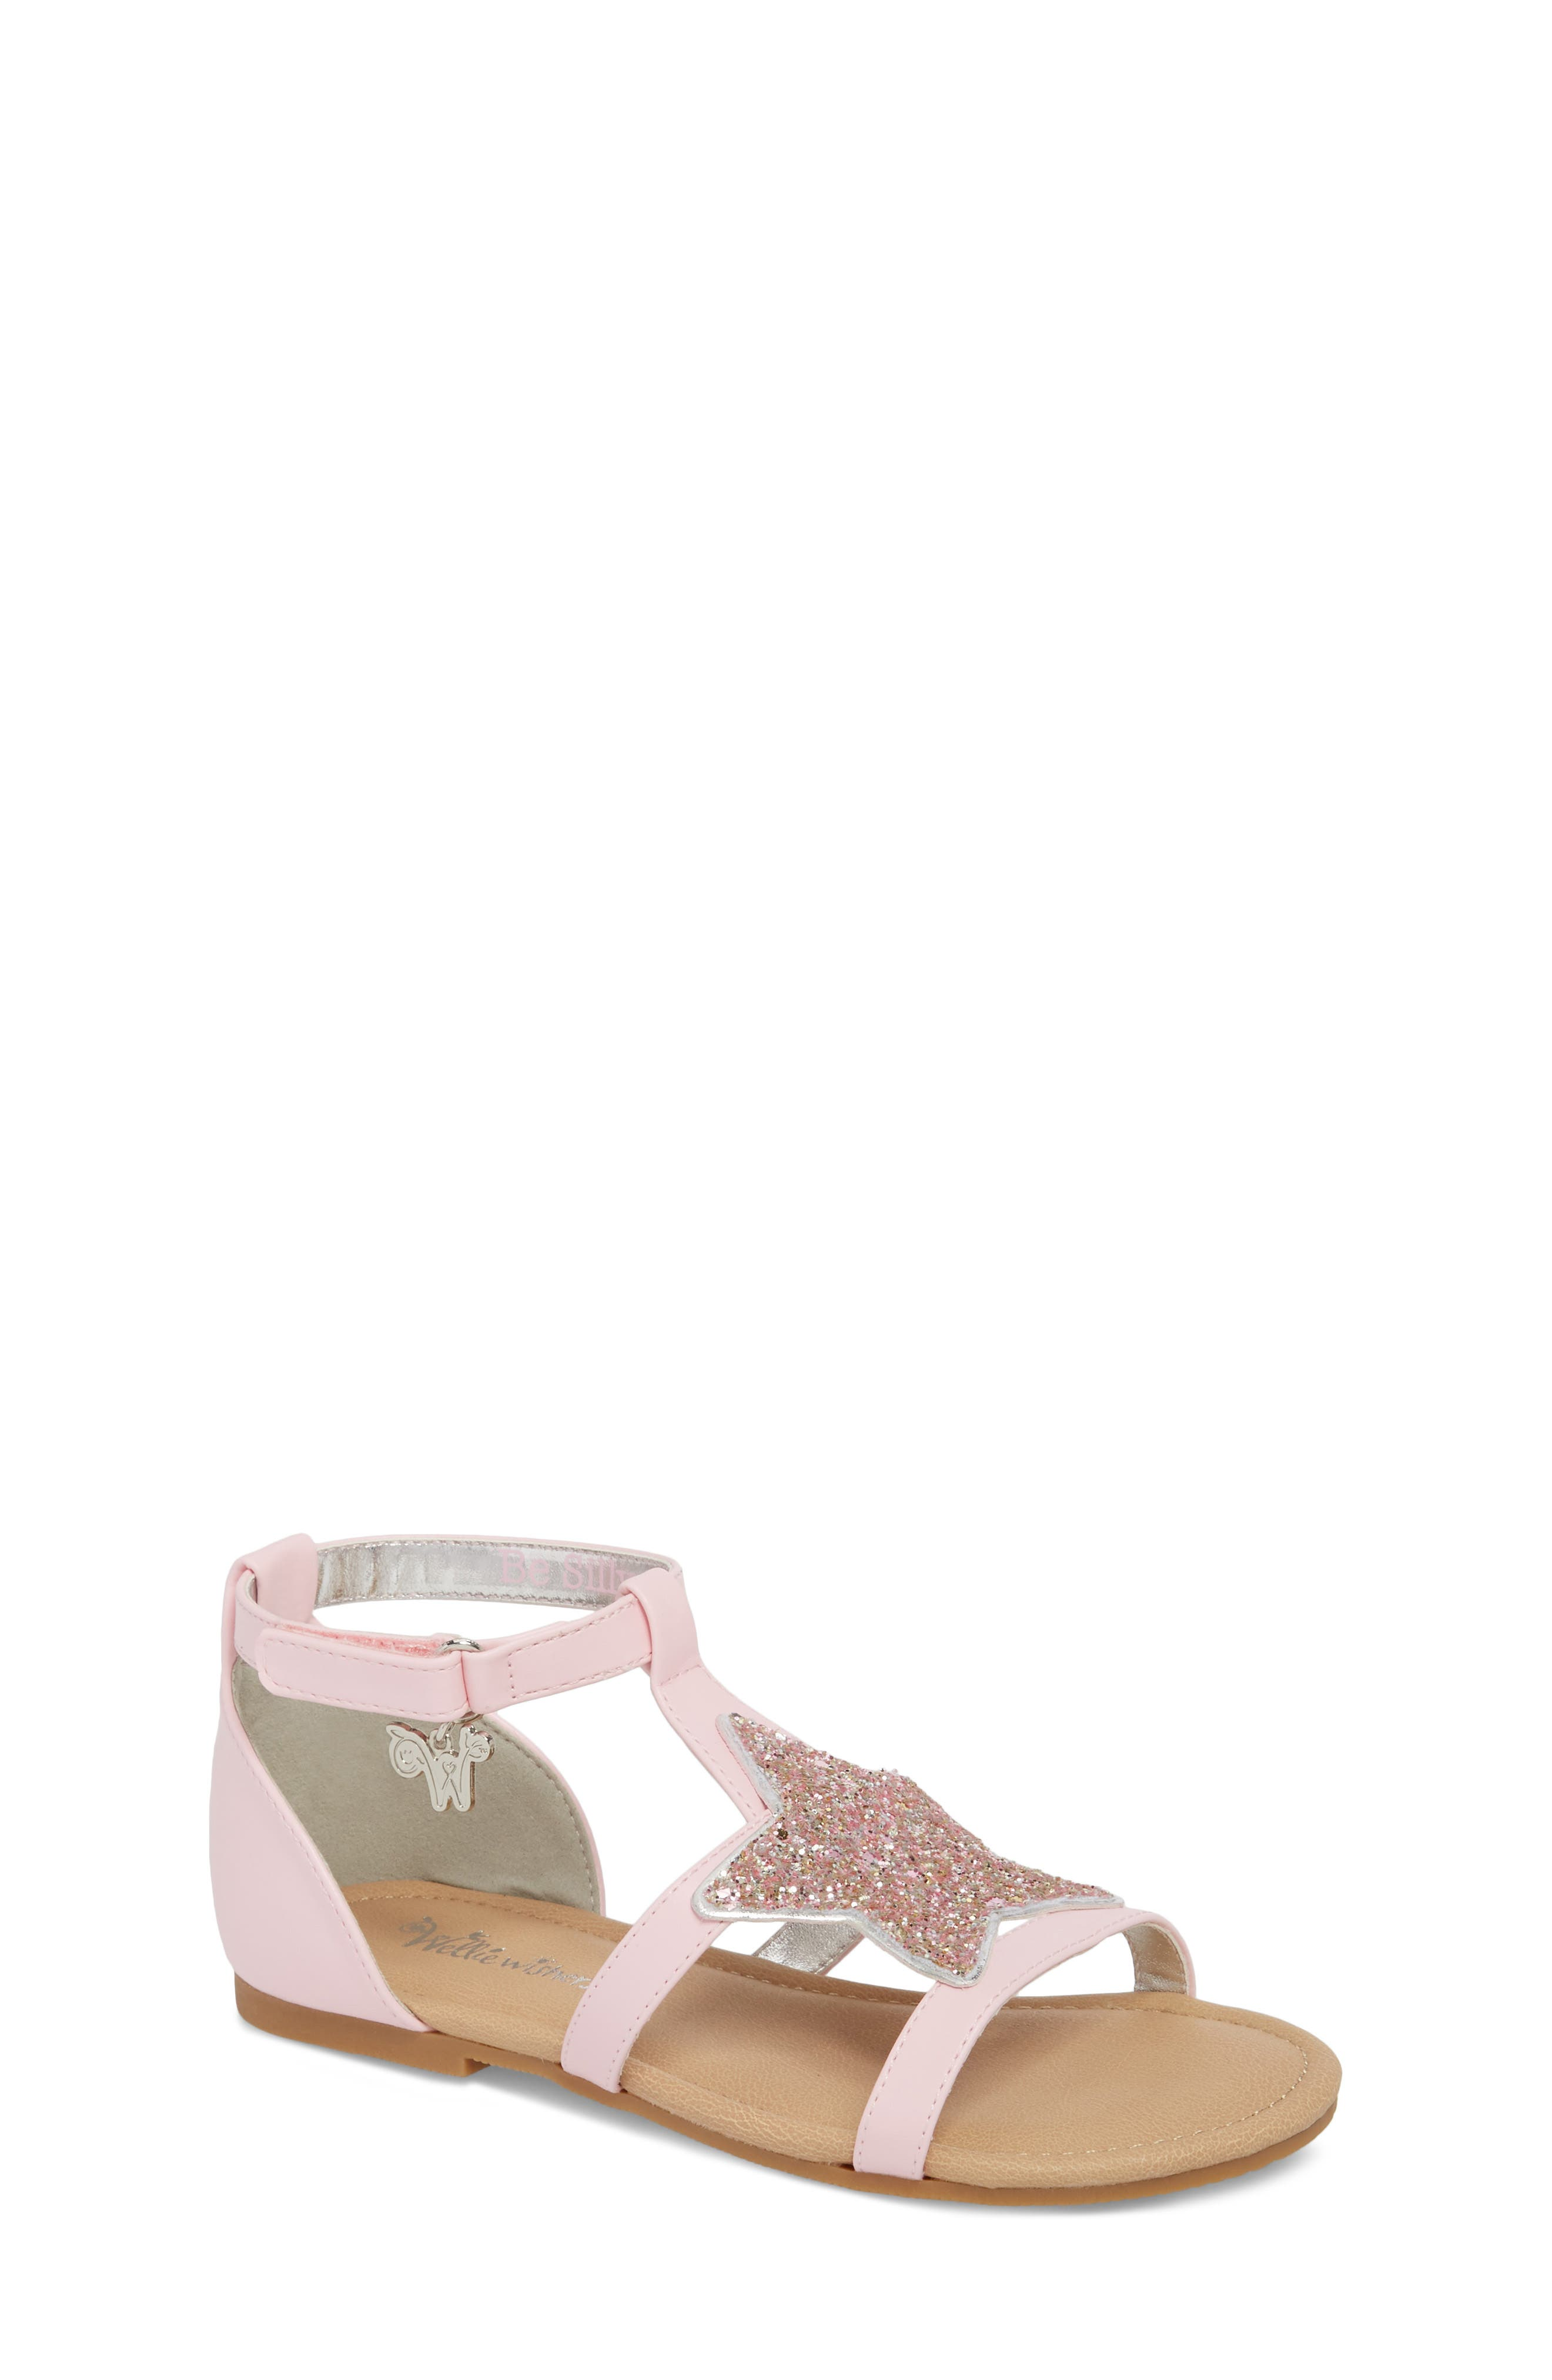 Emerson Glitter Star Sandal,                         Main,                         color, Orchid Pink